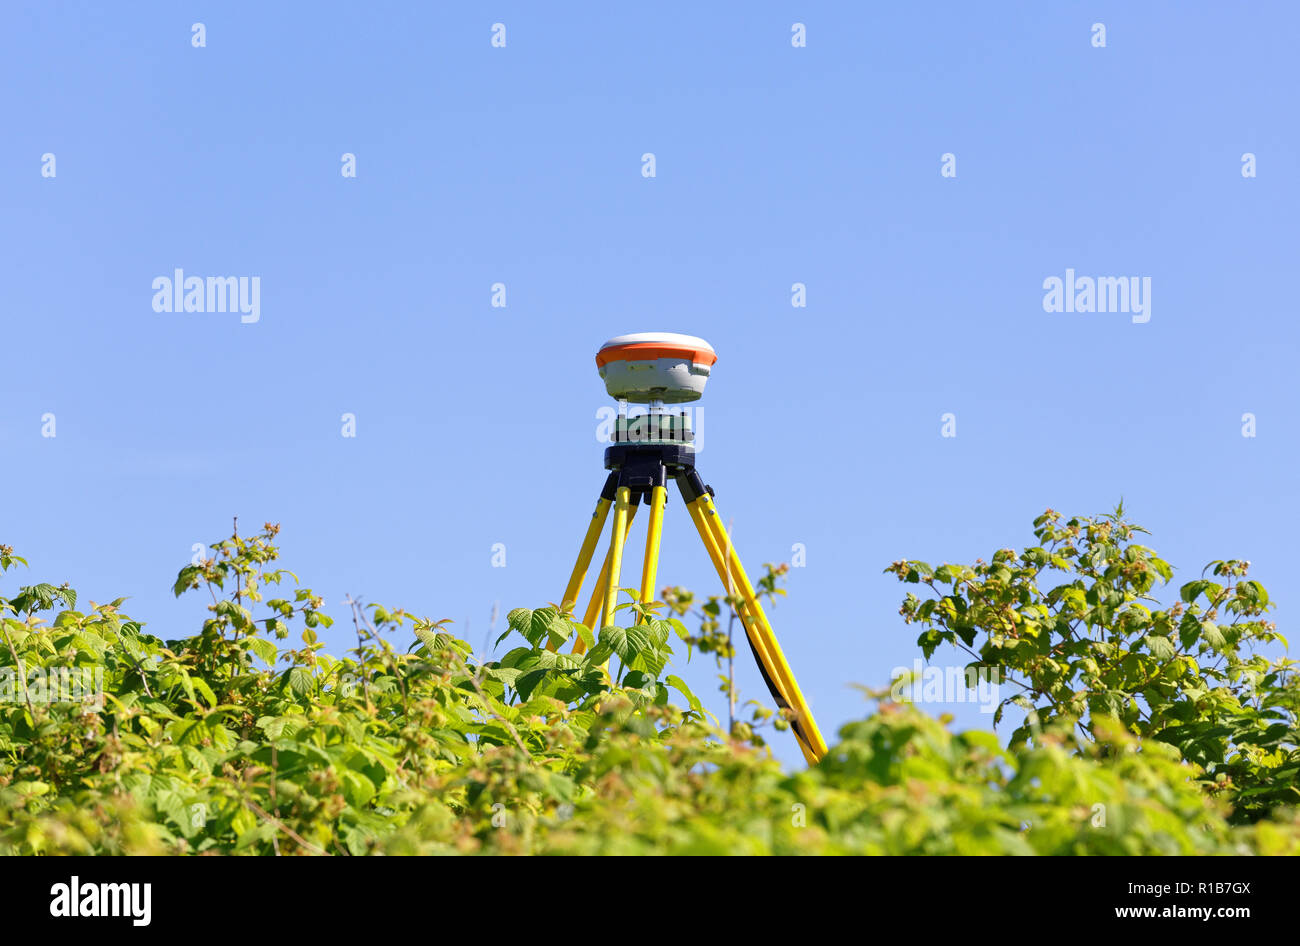 GNSS-geodetic receiver mounted on an old tripod against the background of blue sky and foliage of wild raspberry bushes. Practical application in the  - Stock Image